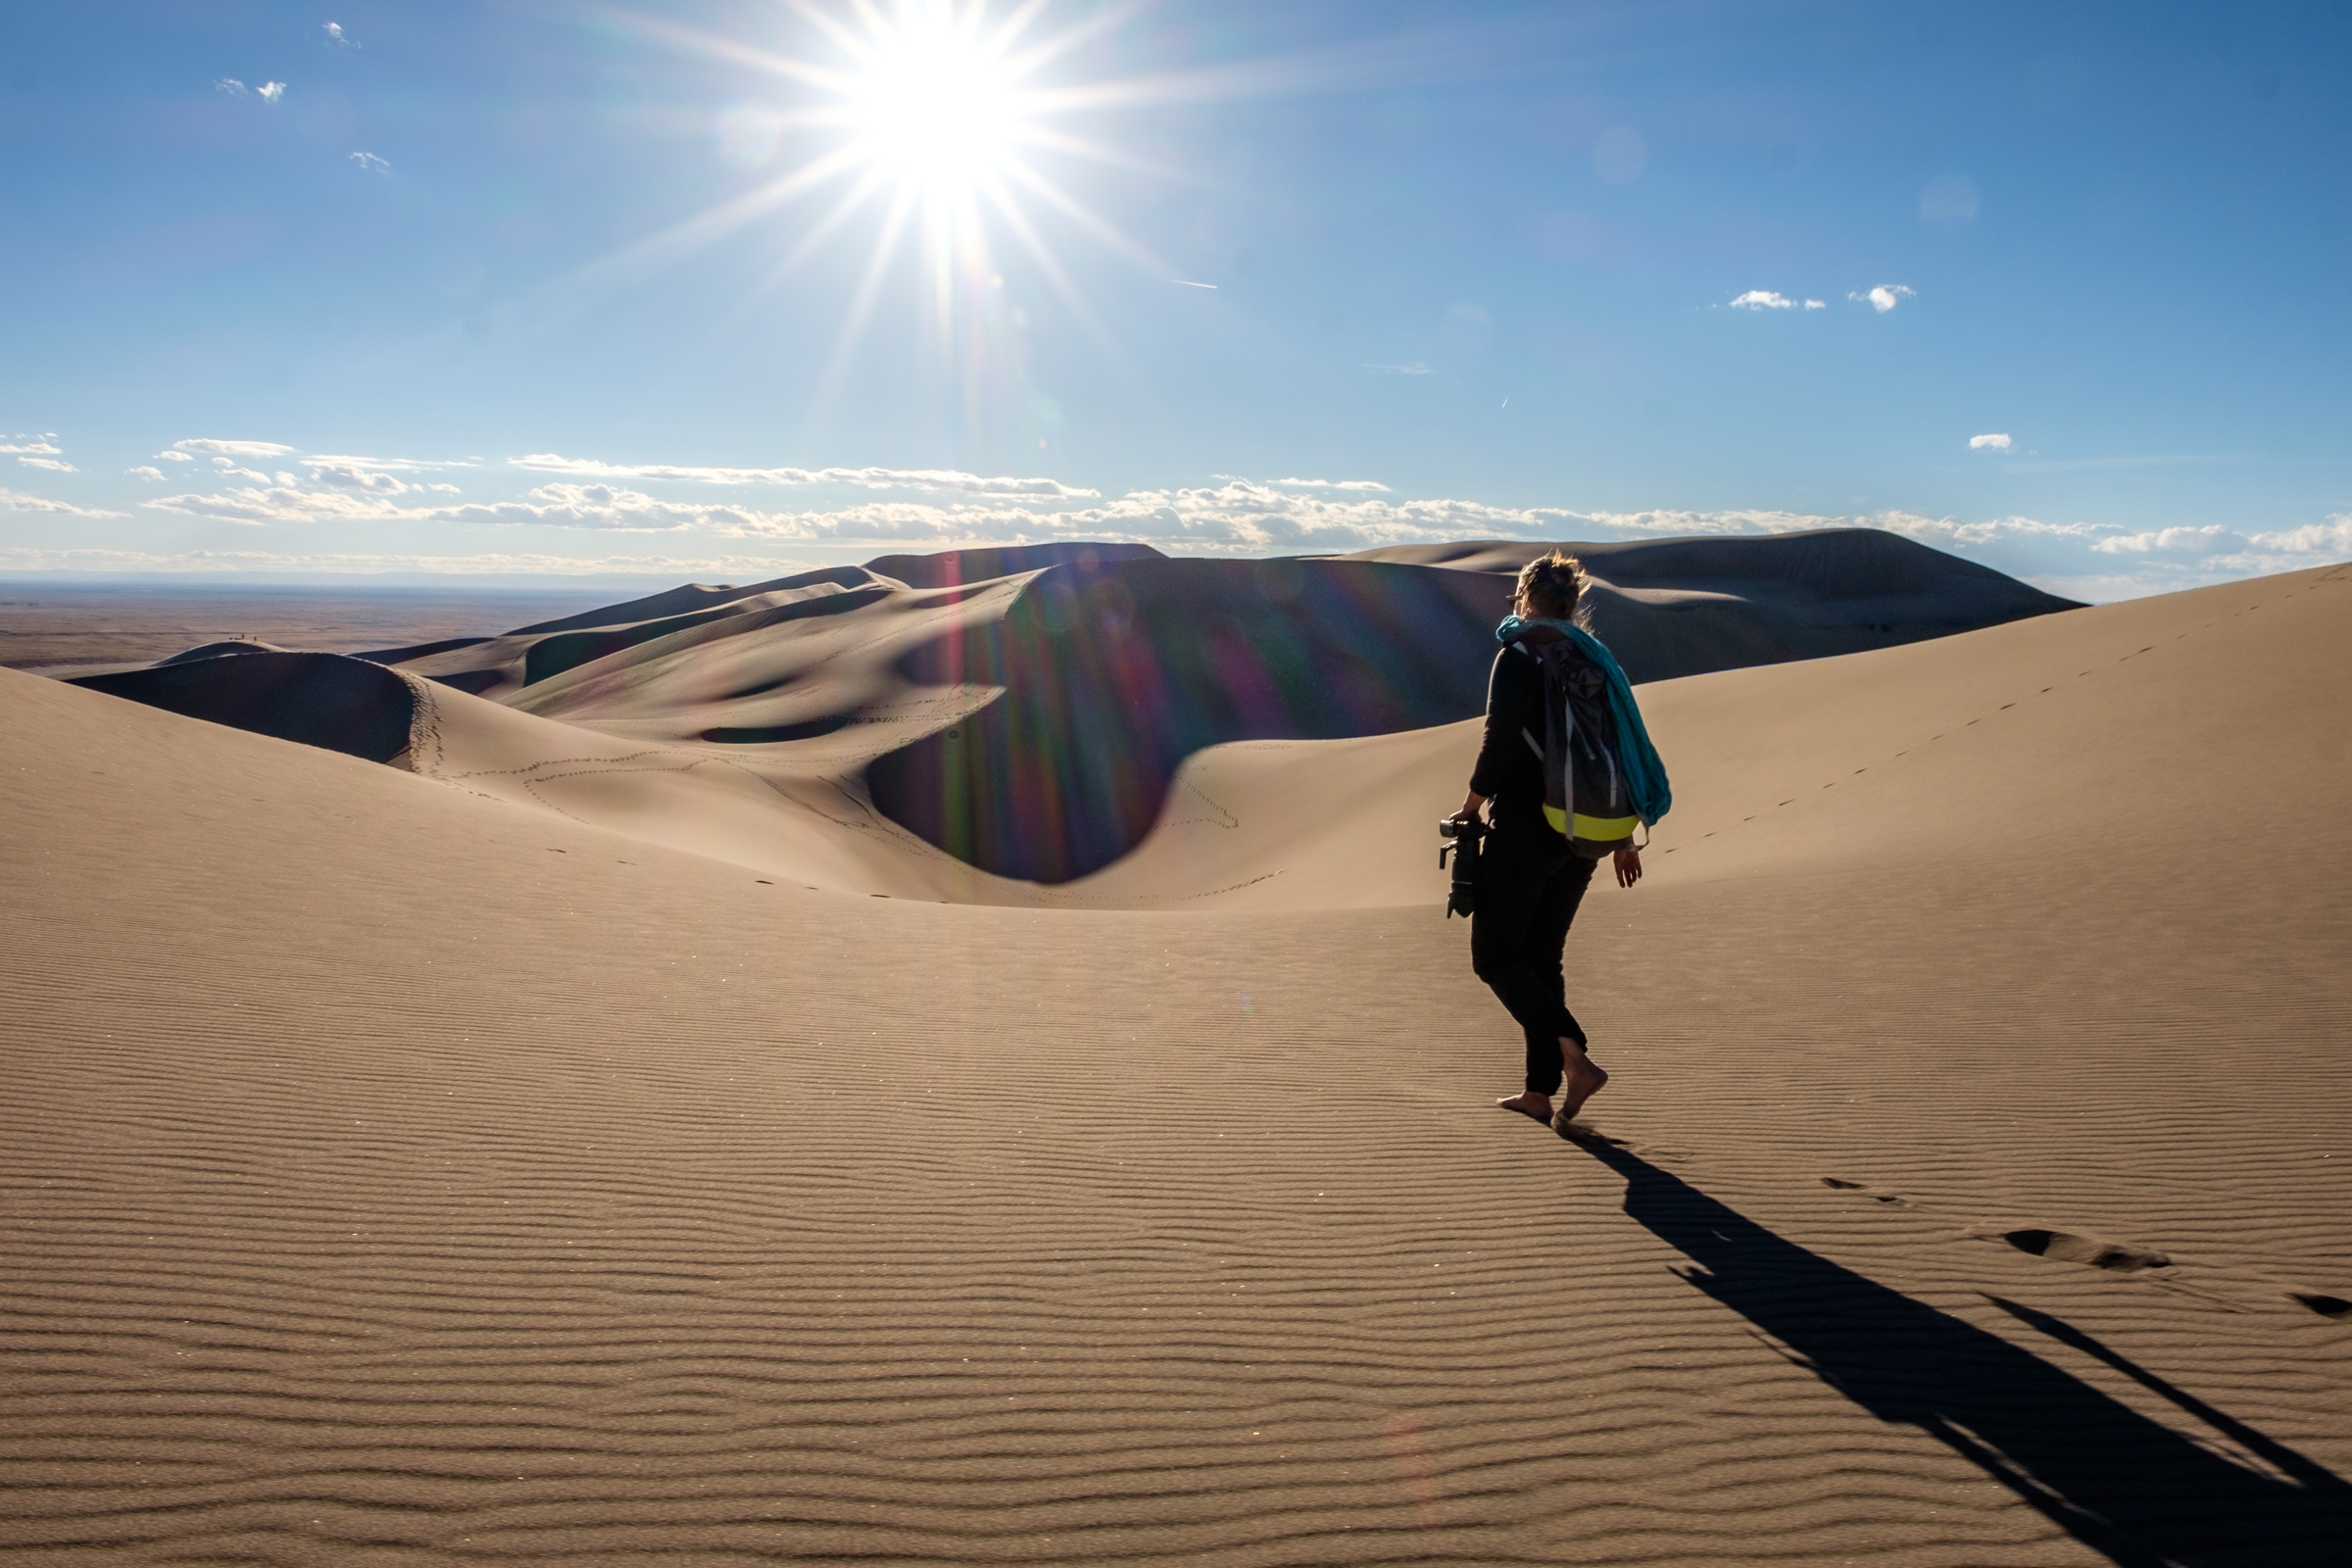 Kissed by the sun at Great Sand Dunes National Park and Preserve in Colorado